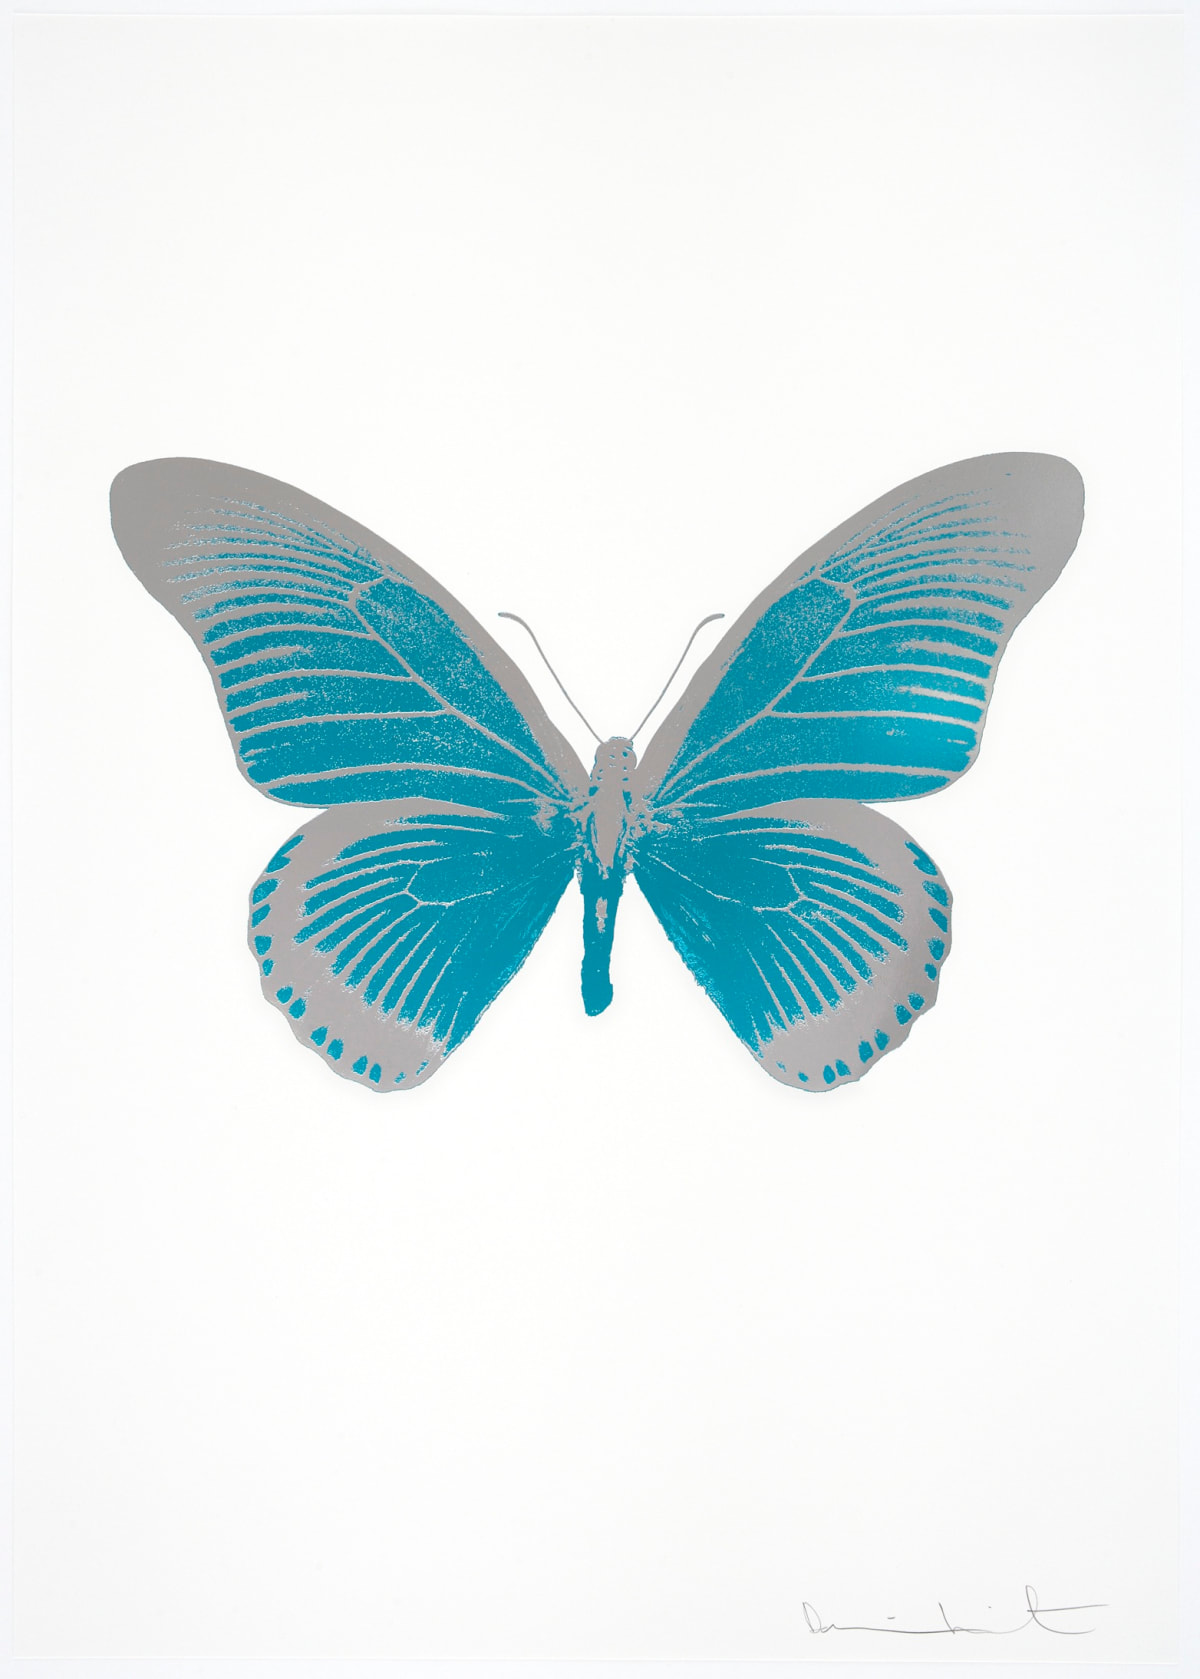 Damien Hirst The Souls IV - Topaz/Silver Gloss Damien Hirst butterfly foil print for sale Damien Hirst print for sale , 2010 2 colour foil block on 300gsm Arches 88 archival paper. Signed and numbered. Published by Paul Stolper and Other Criteria 72 x 51cm OC7996 / 1418-19 Edition of 15